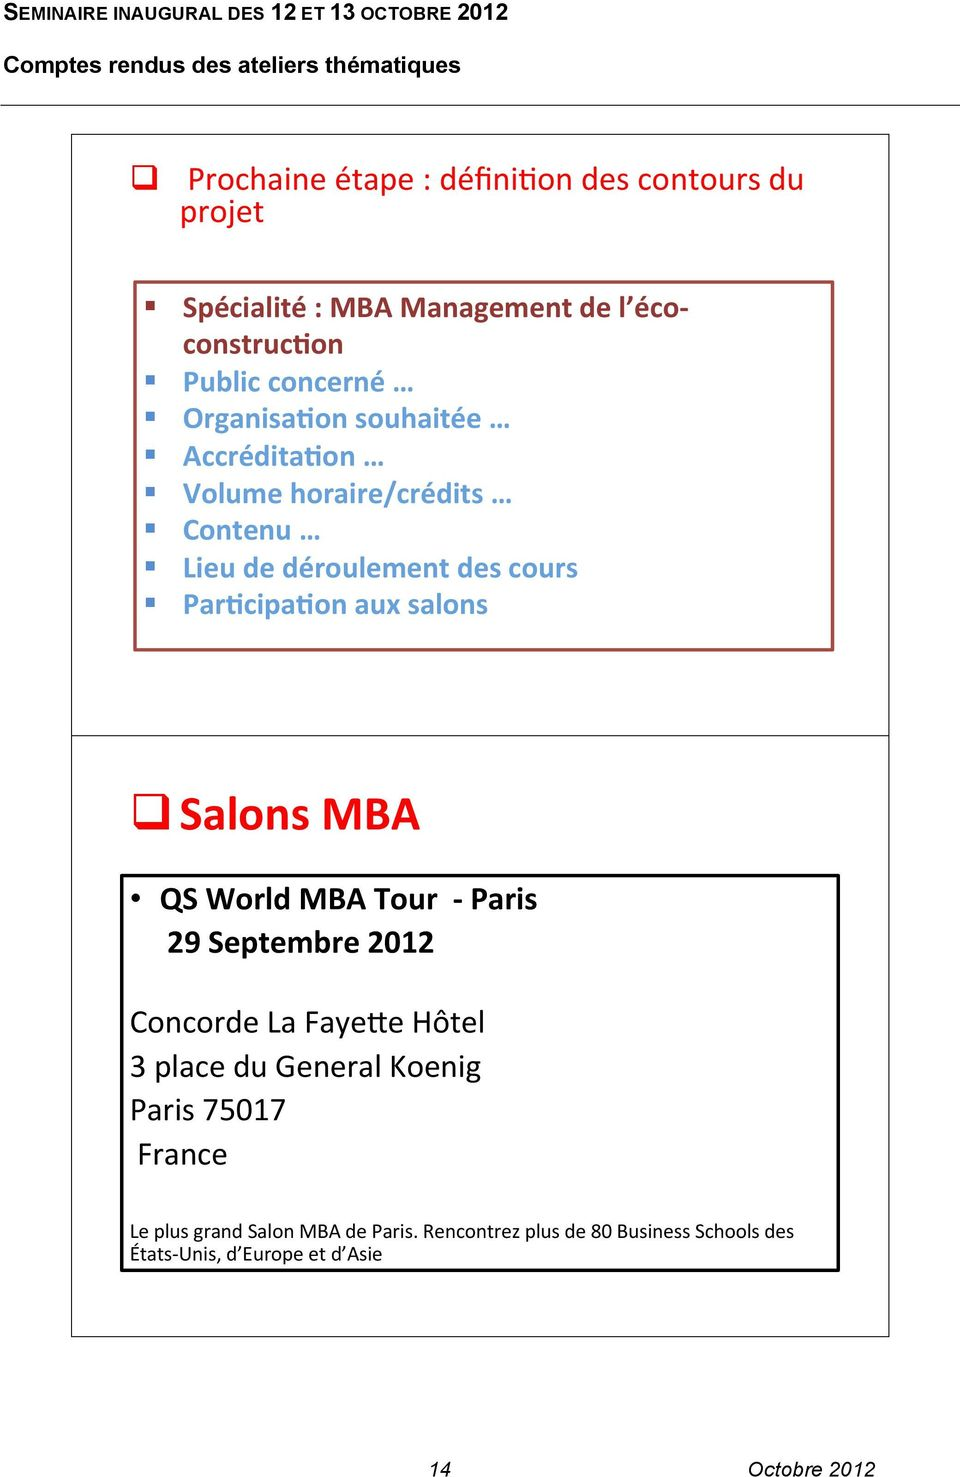 Par9cipa9on)aux)salons)) Salons'MBA' QS'World'MBA'Tour''1'Paris' '''''29'Septembre'2012' ' ConcordeLaFaye-eHôtel